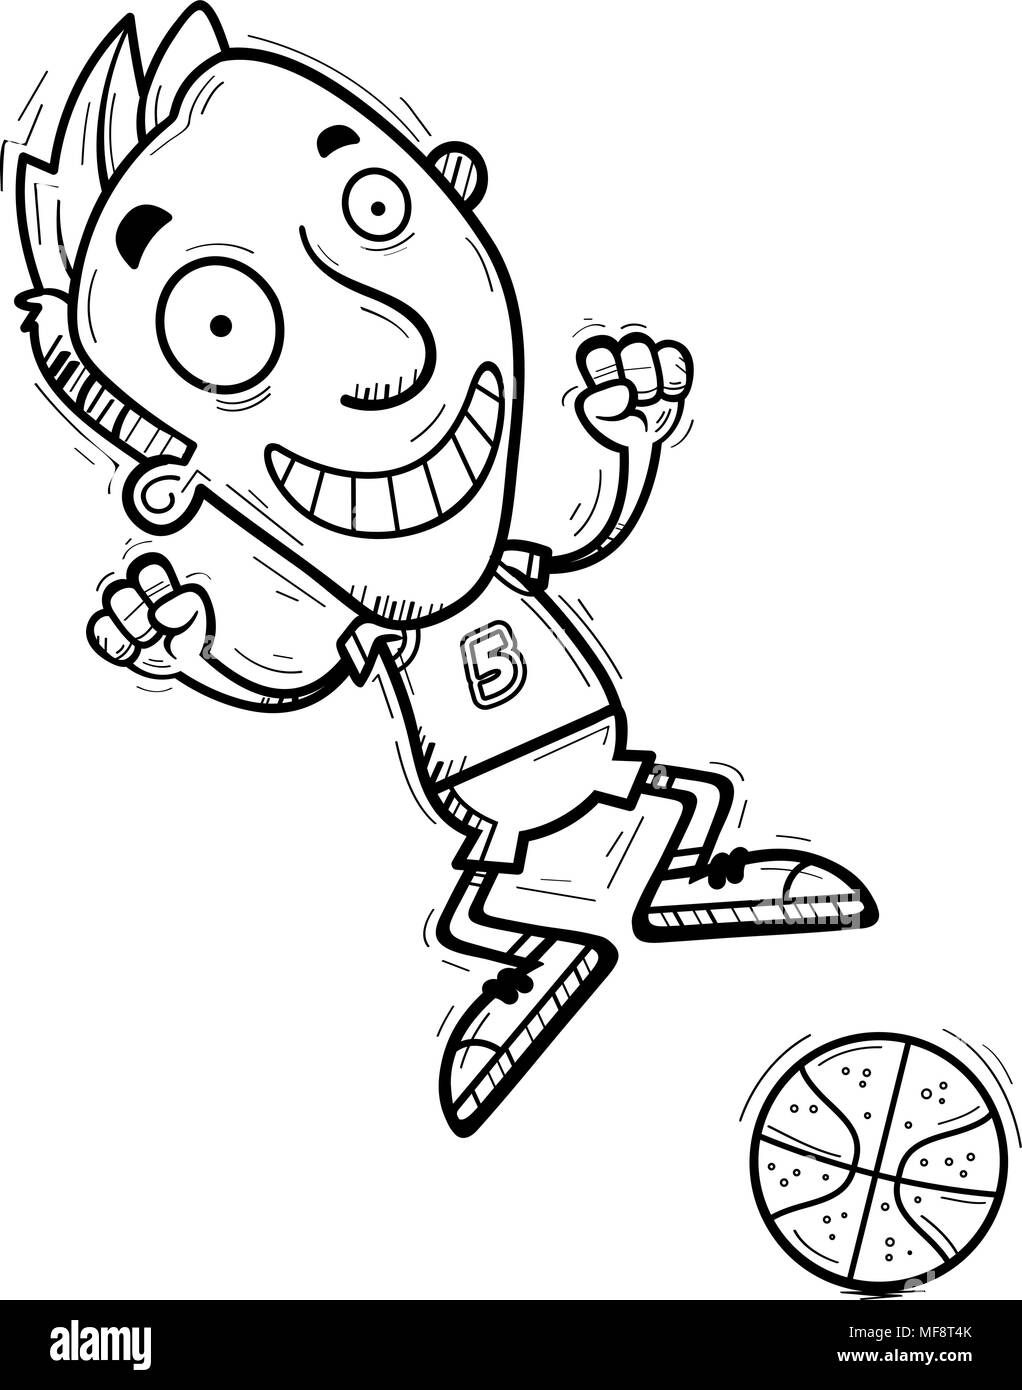 A cartoon illustration of a man basketball player jumping. - Stock Image